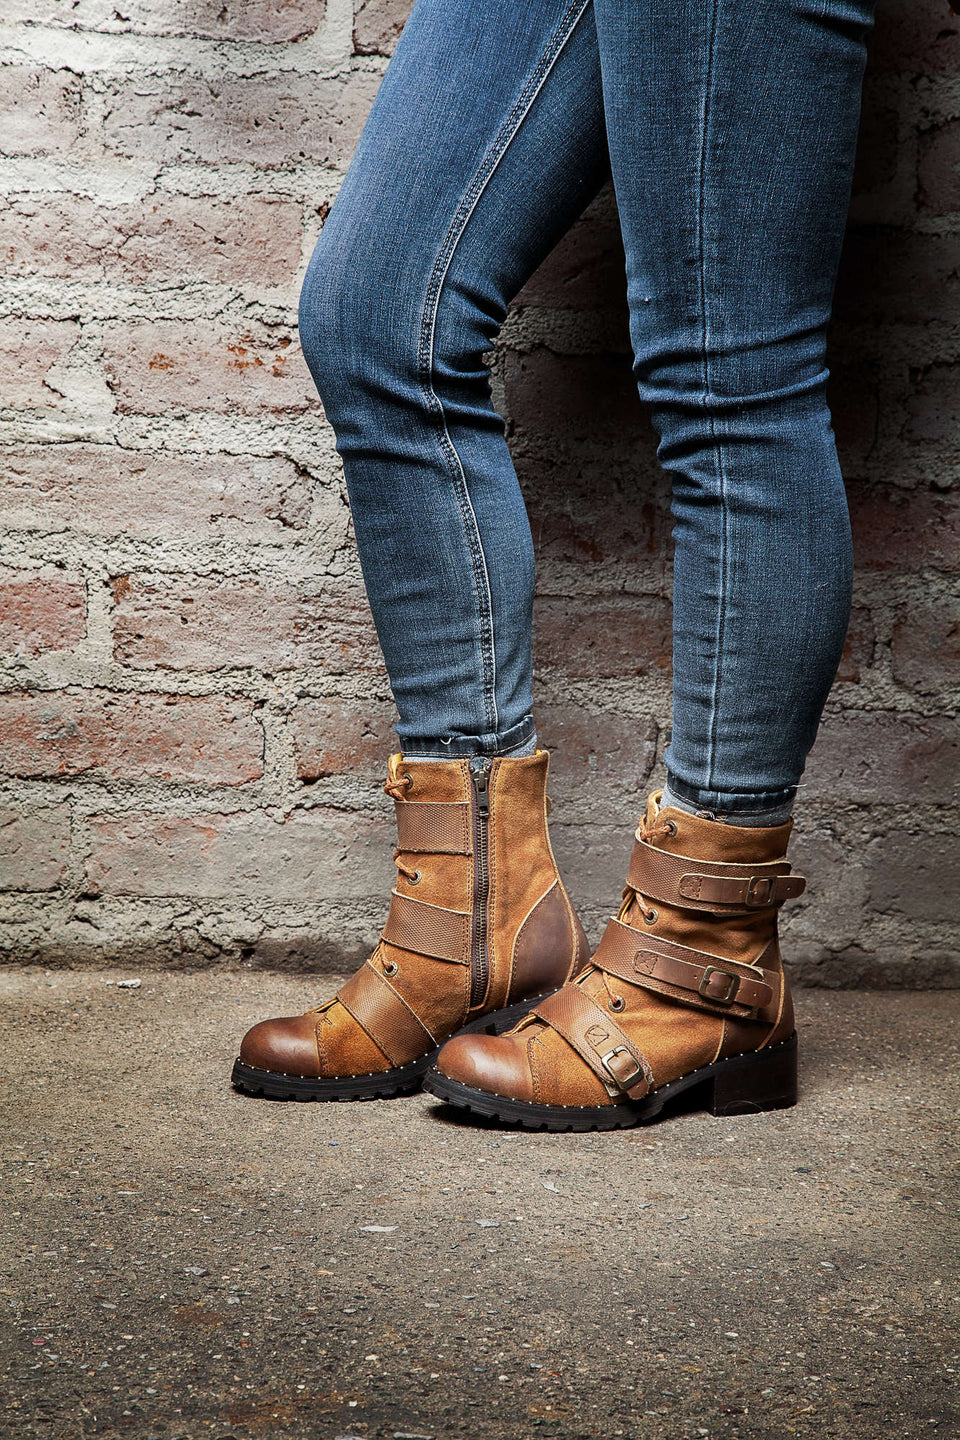 Maffeo Women Motorcycle Boots By Umberto Luce